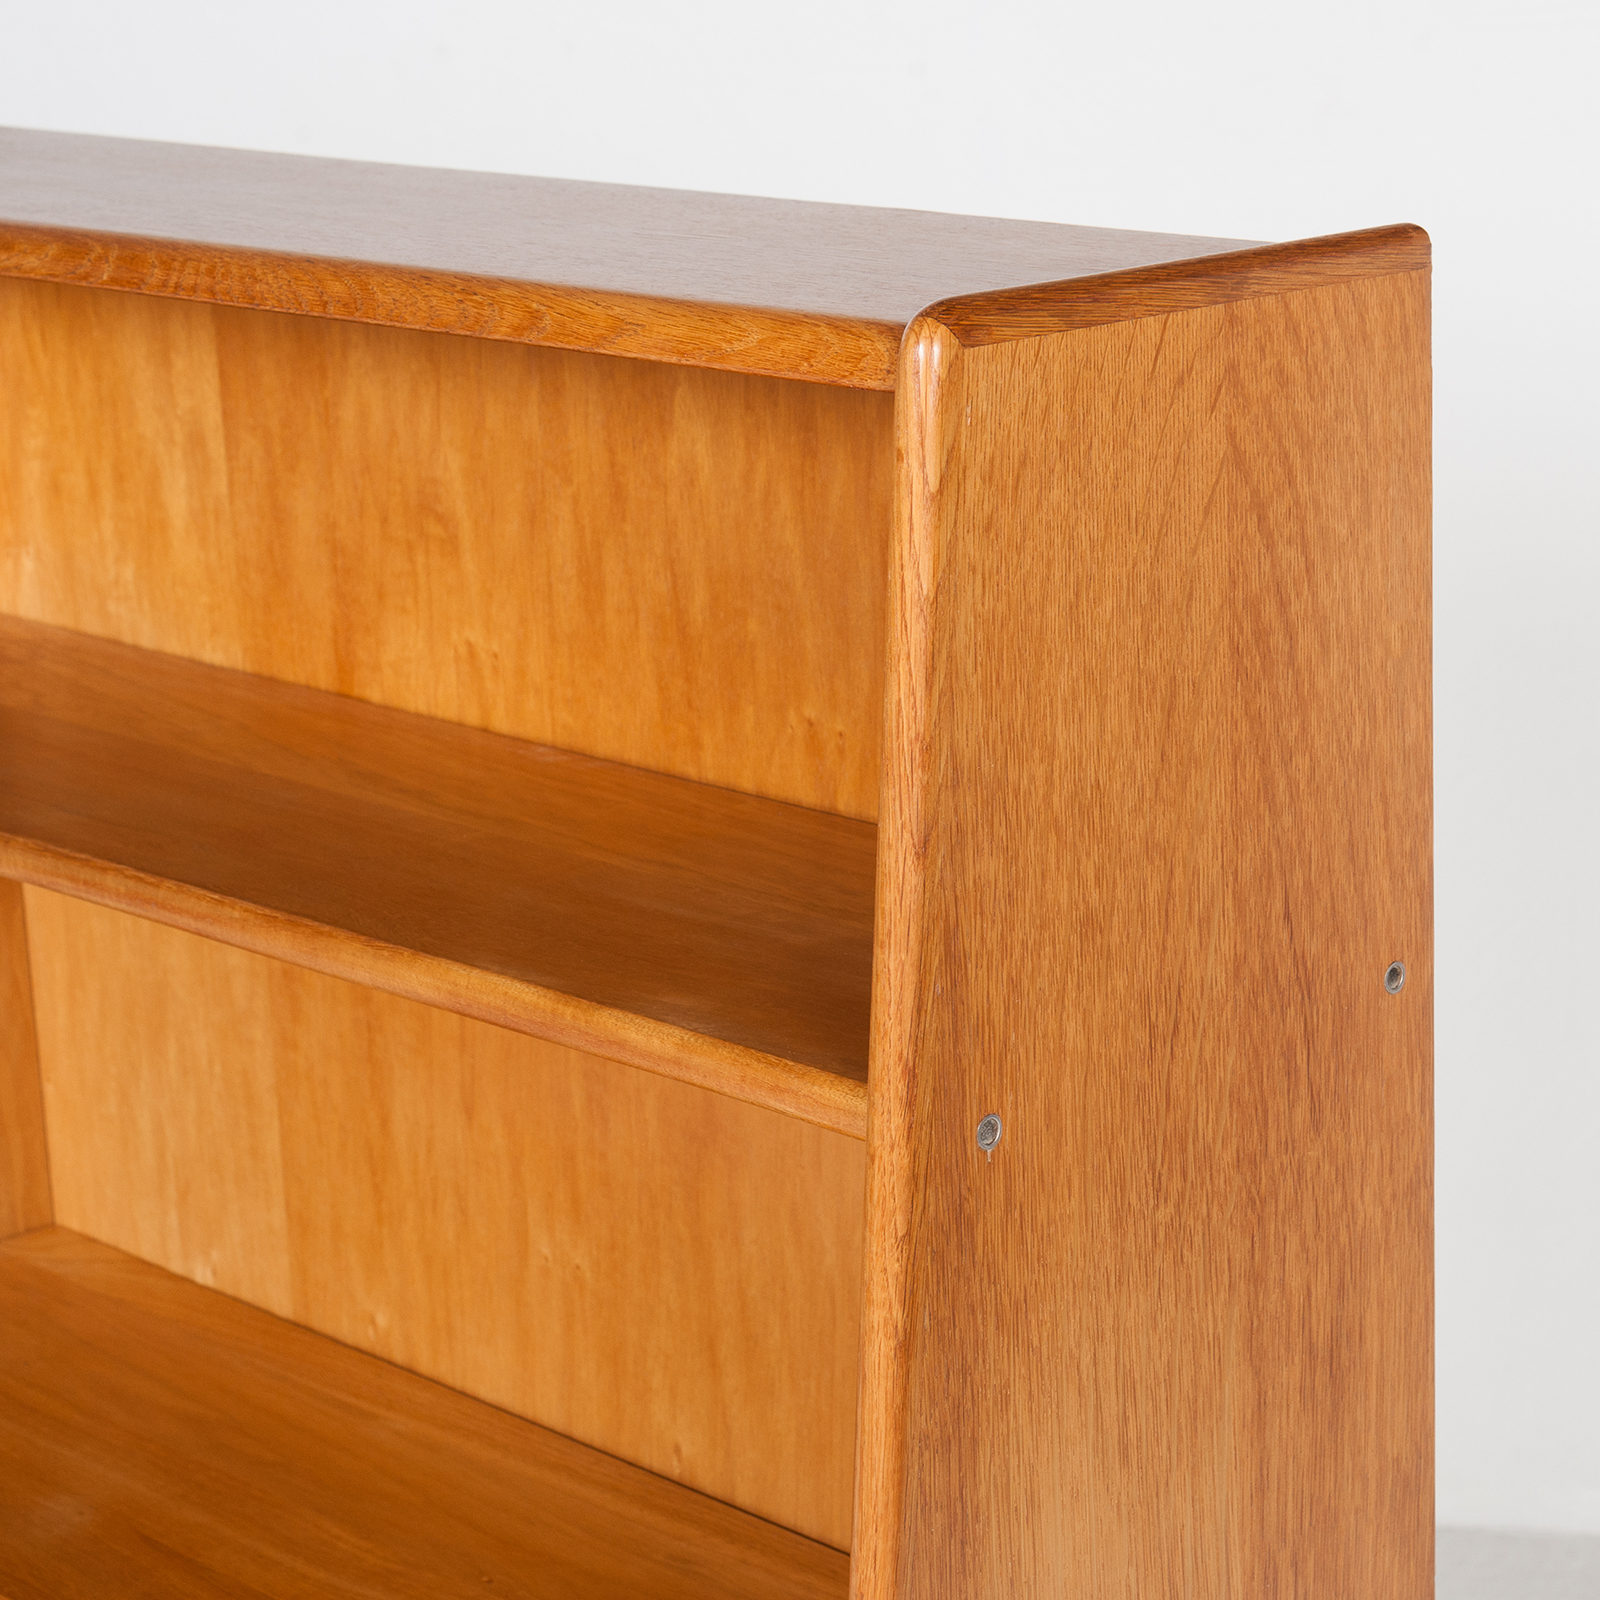 Model Be 03 Oak Series Bookcase By Cees Braakman For Pastoe, 1950s, The Netherlands 40